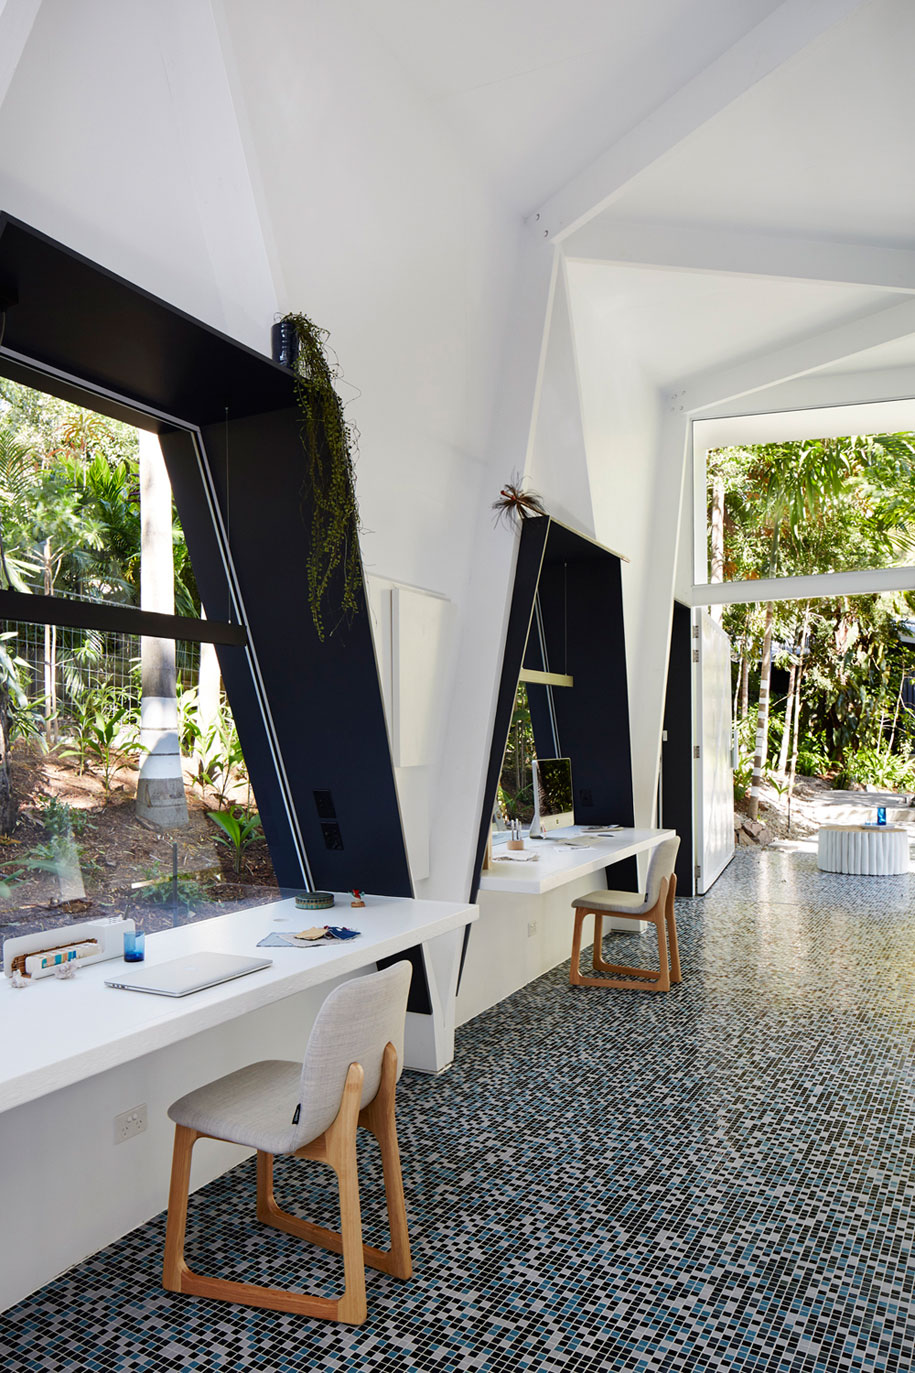 Interior Designer Brisbane: Brisbane's IndigoJungle Gets A New Leafy Office Space: The